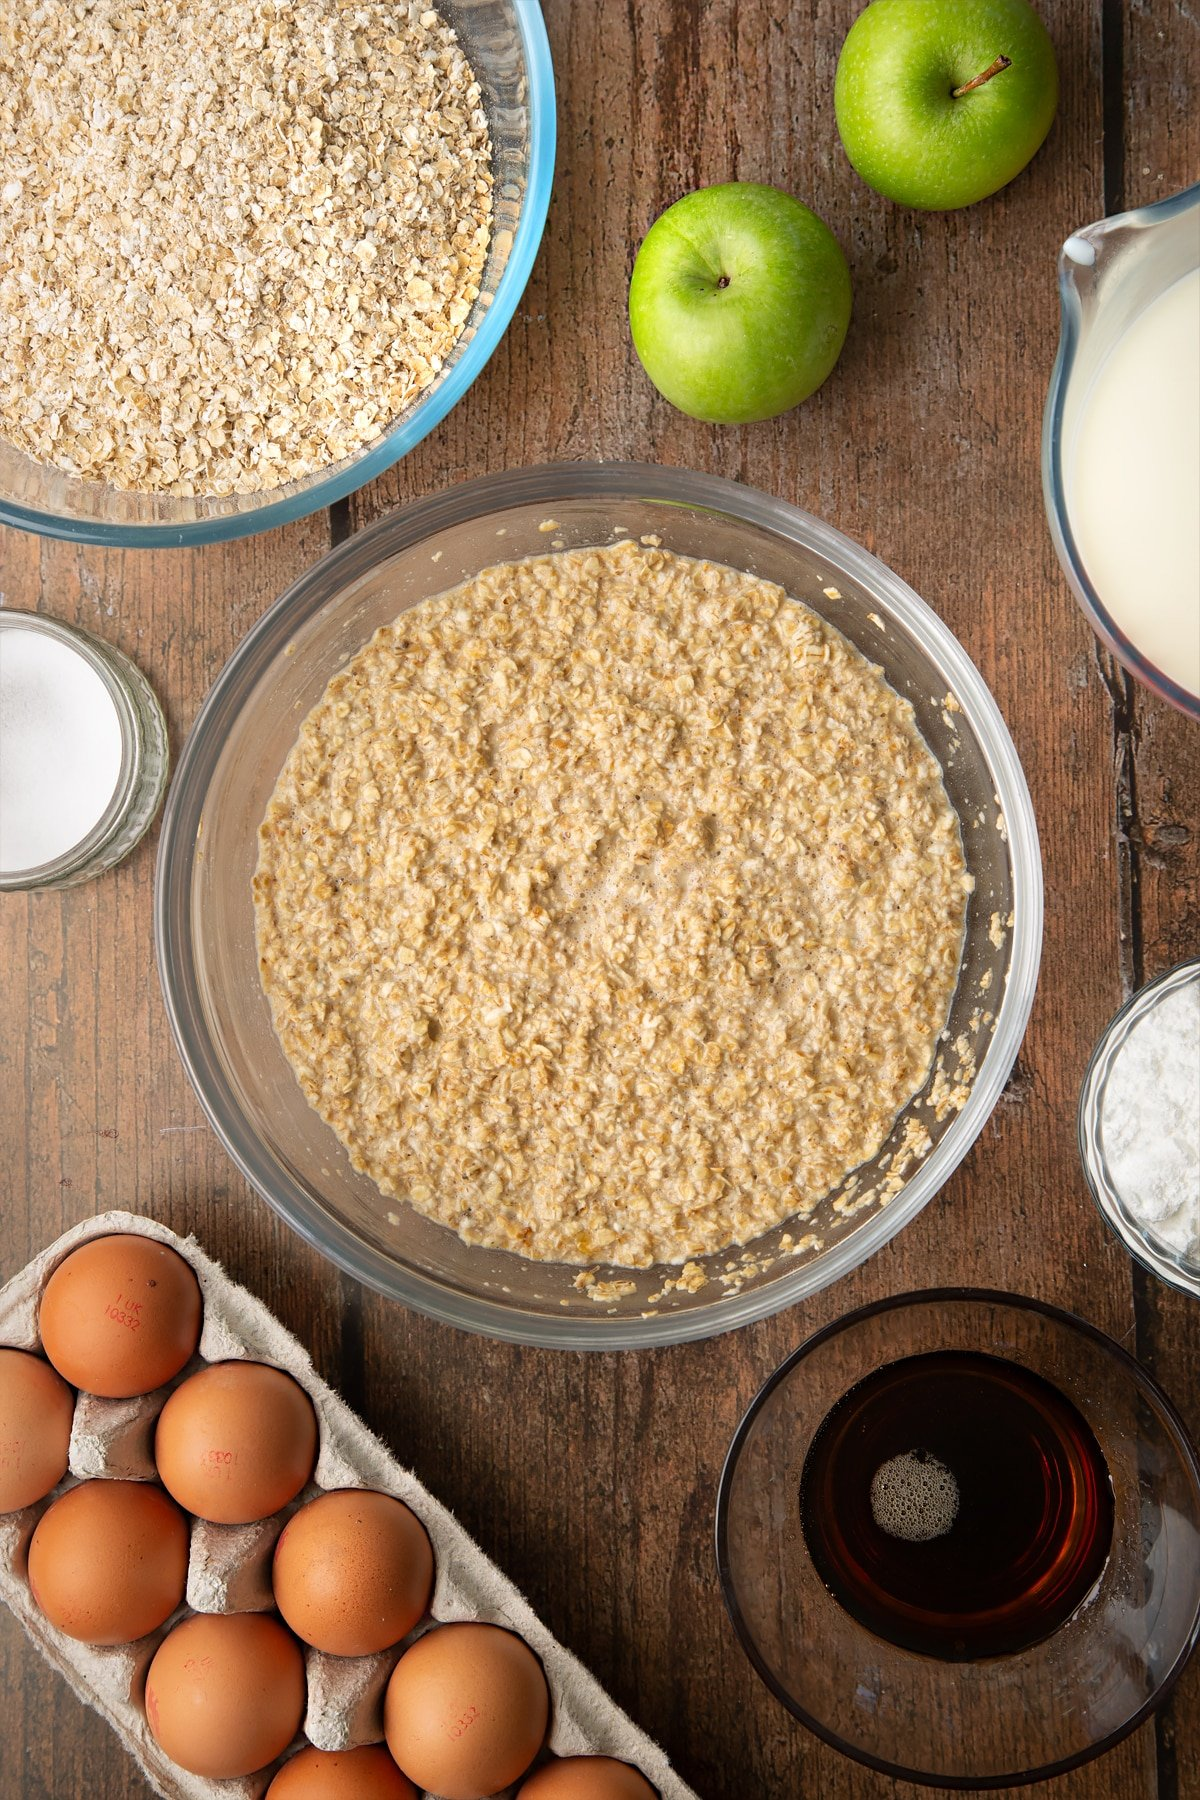 Oats, baking powder, salt, milk, eggs and maple syrup, mixed in a glass mixing bowl. Ingredients to make porridge squares surround the bowl.